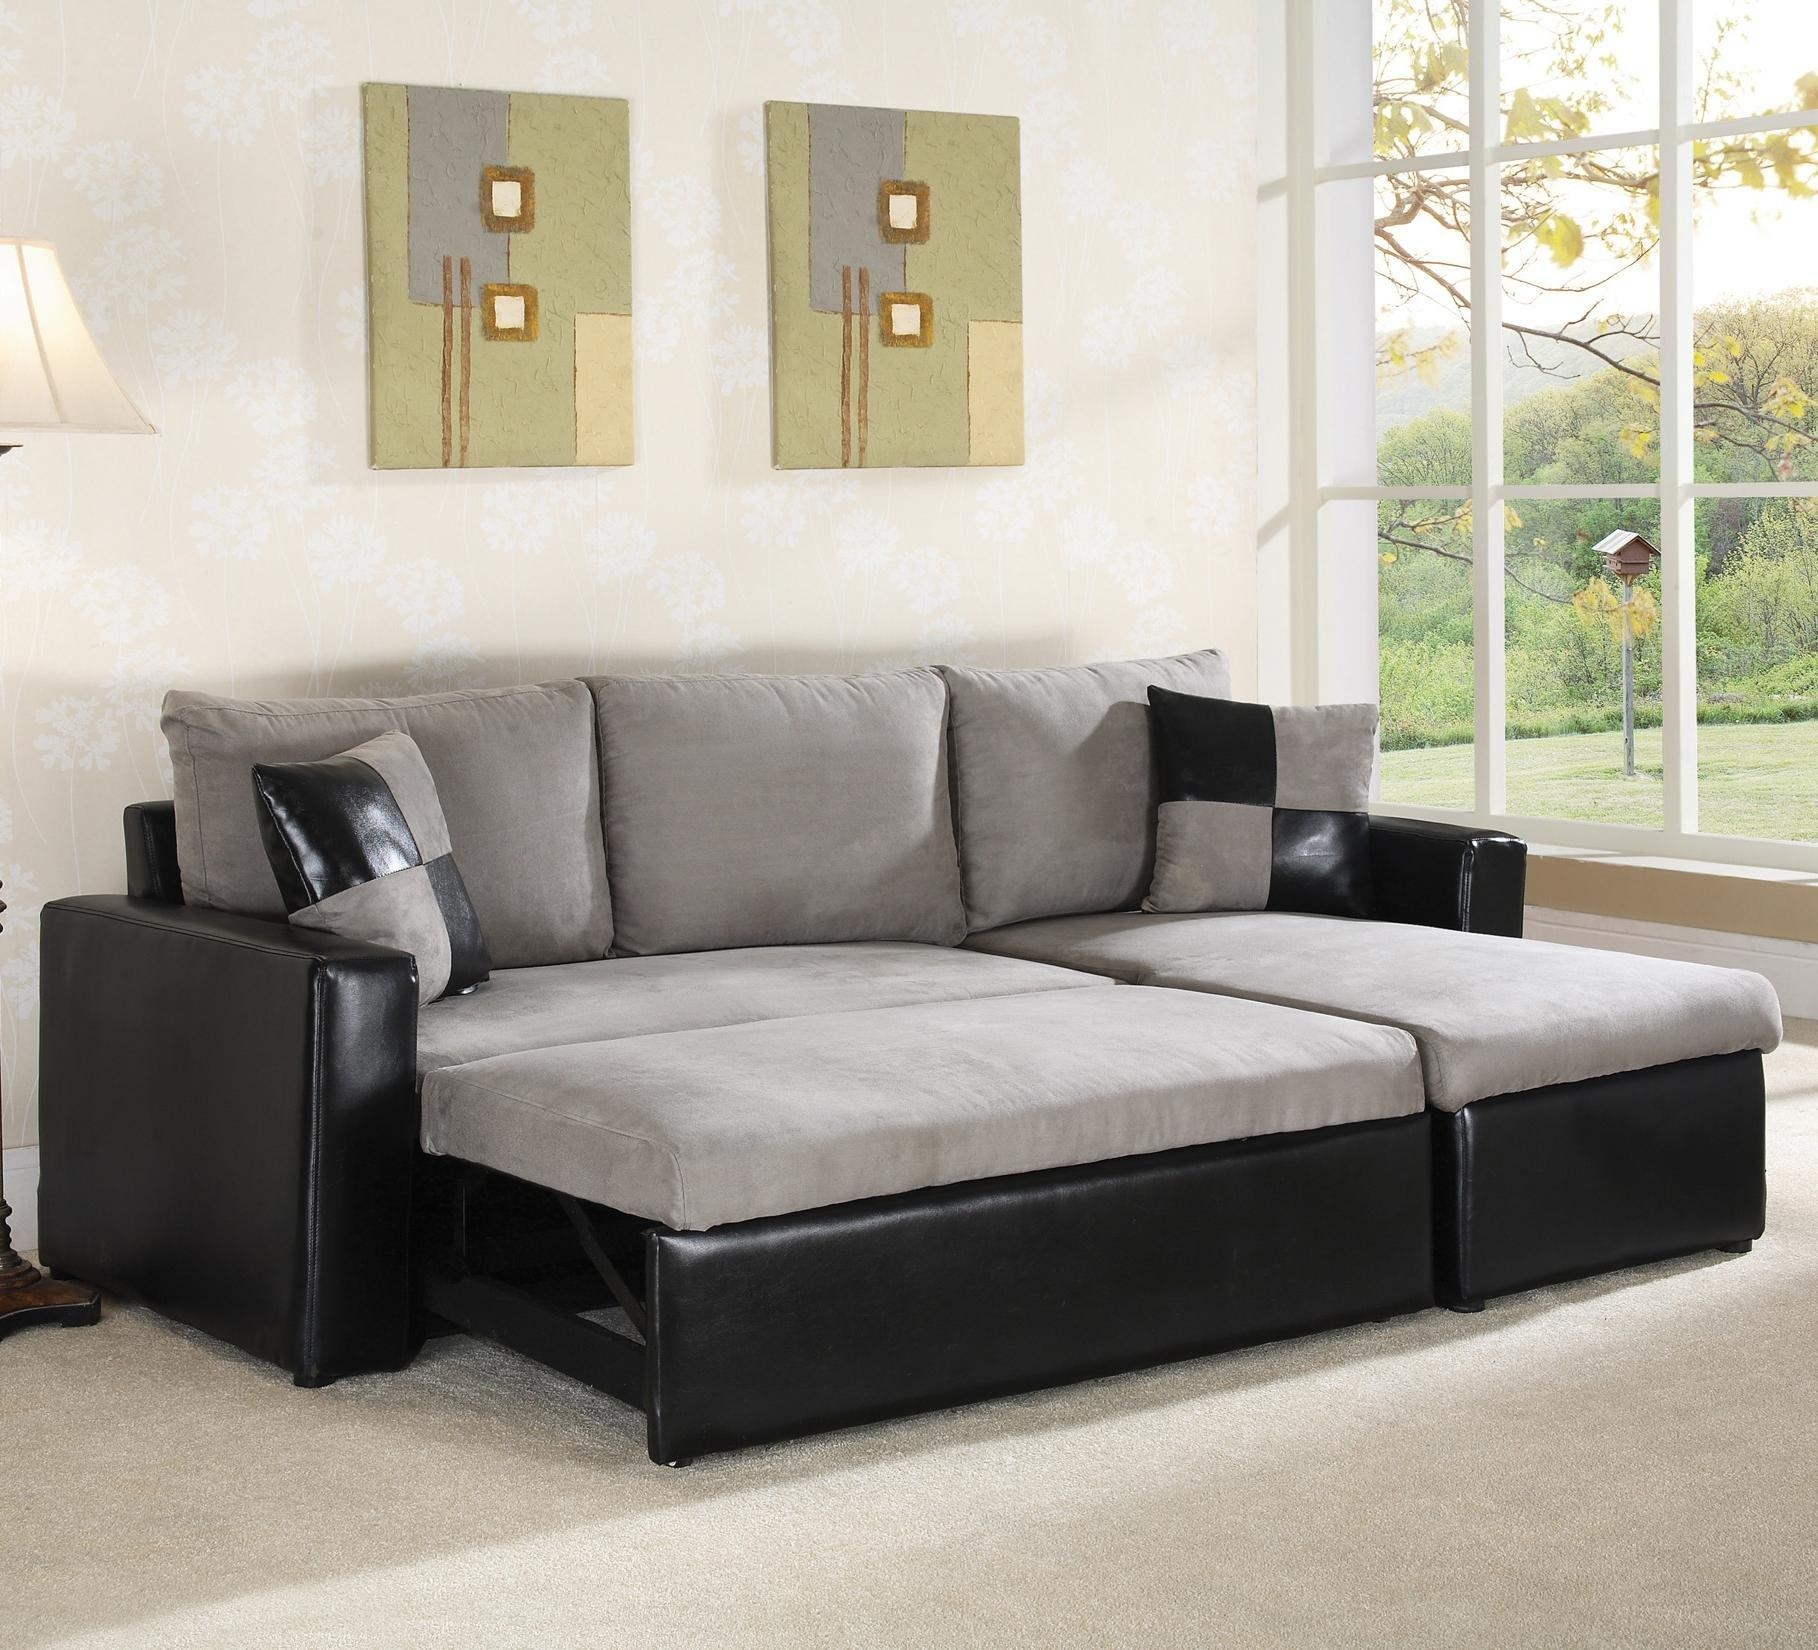 Large Grey Sleeper Sofa With Black Leather Base And Grey Black With Black Leather Sectional Sleeper Sofas (View 20 of 21)